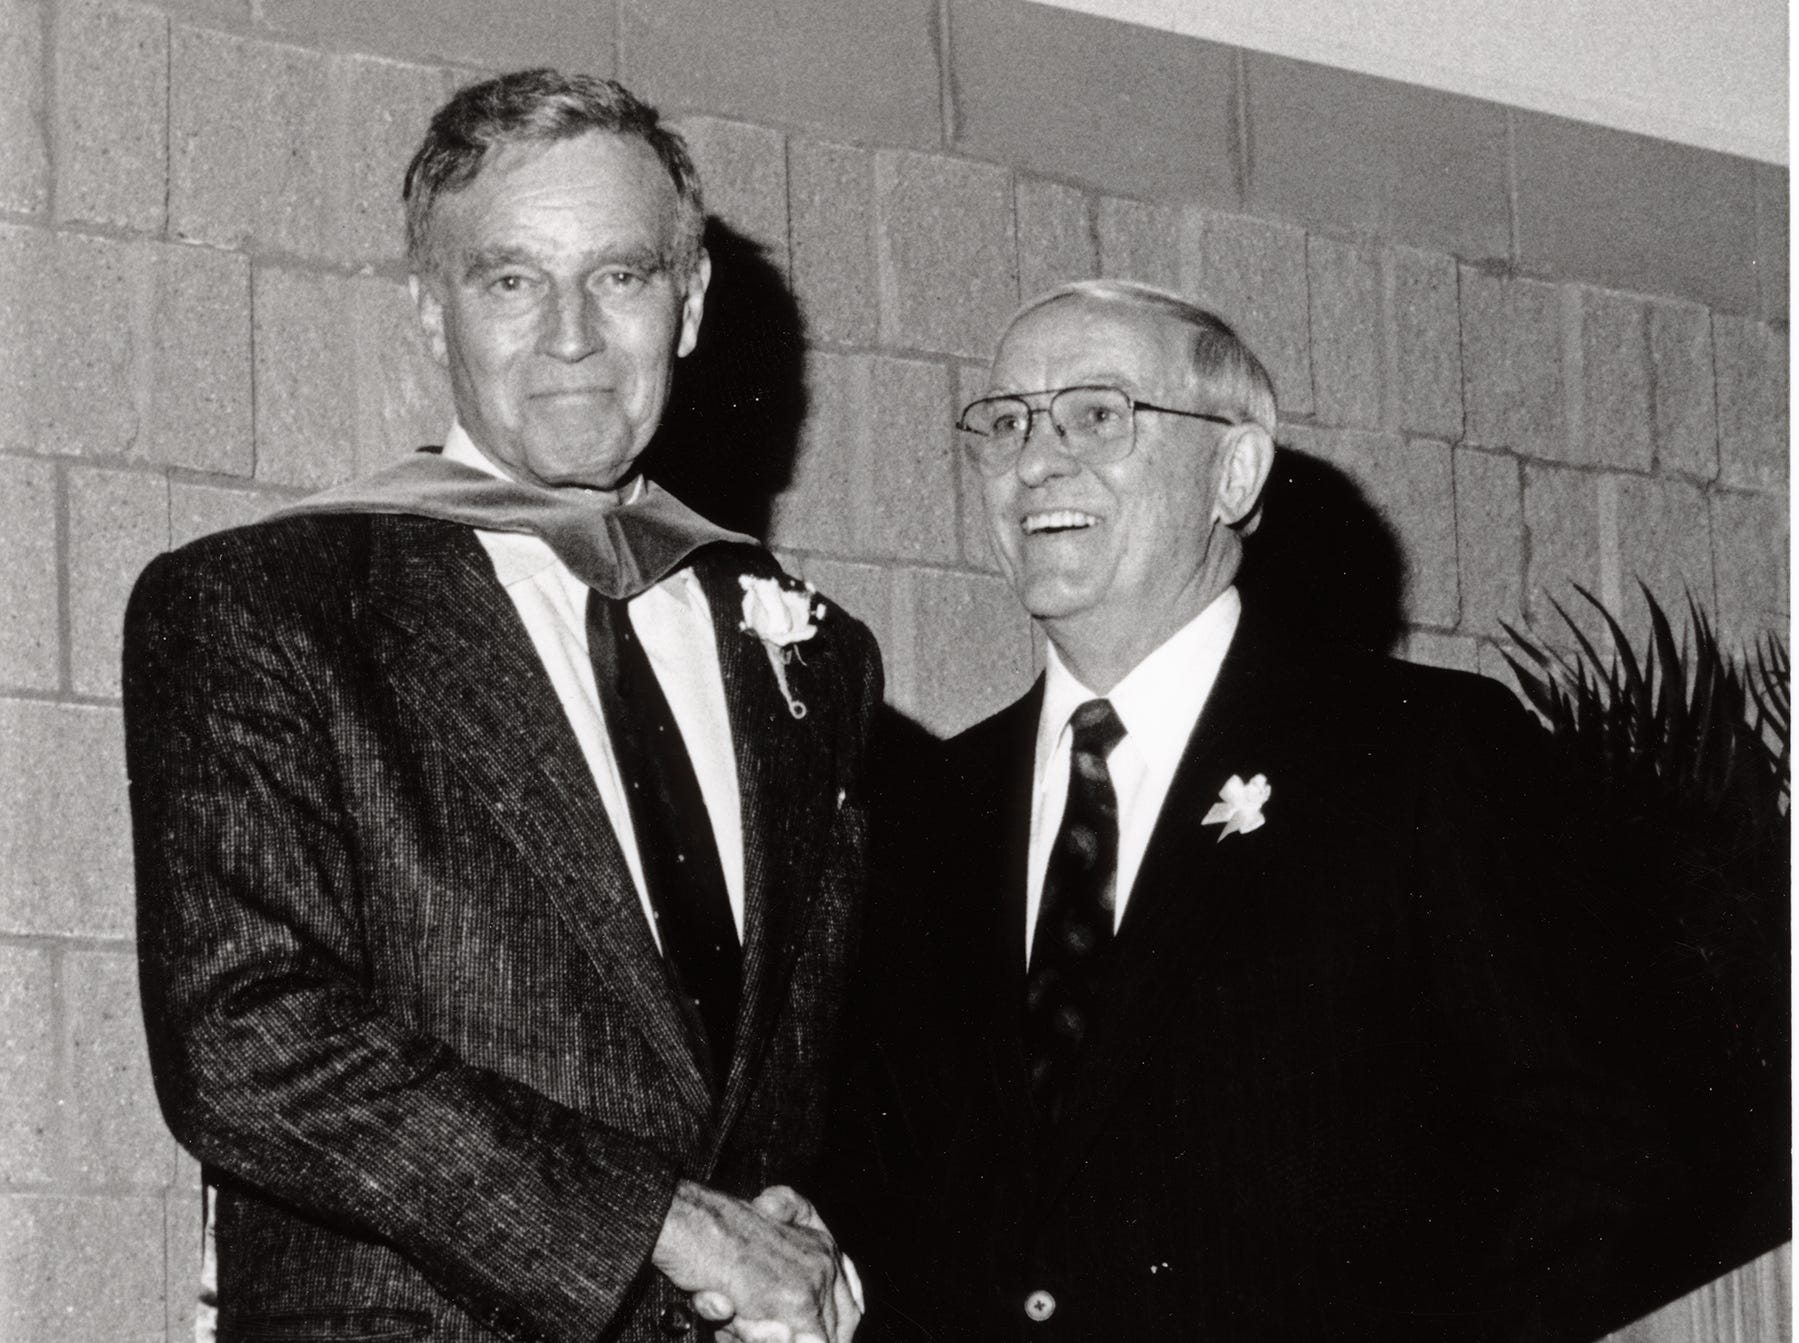 Dr. William J. Teague, right, with Charleton Heston at the 1991 President's Circle dinner.